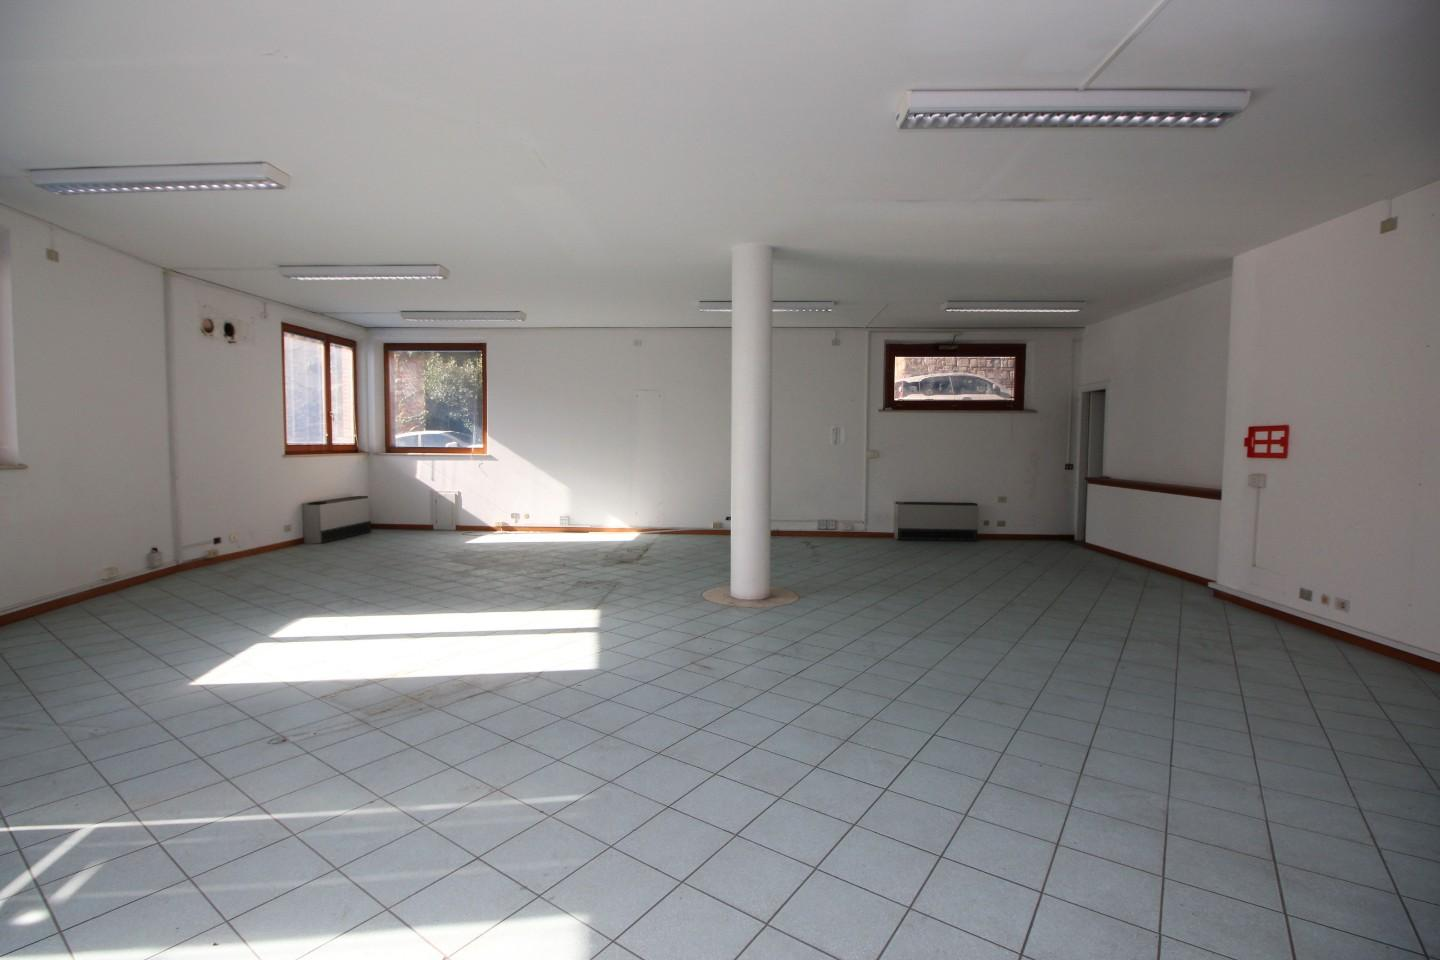 Office for commercial rentals in Siena